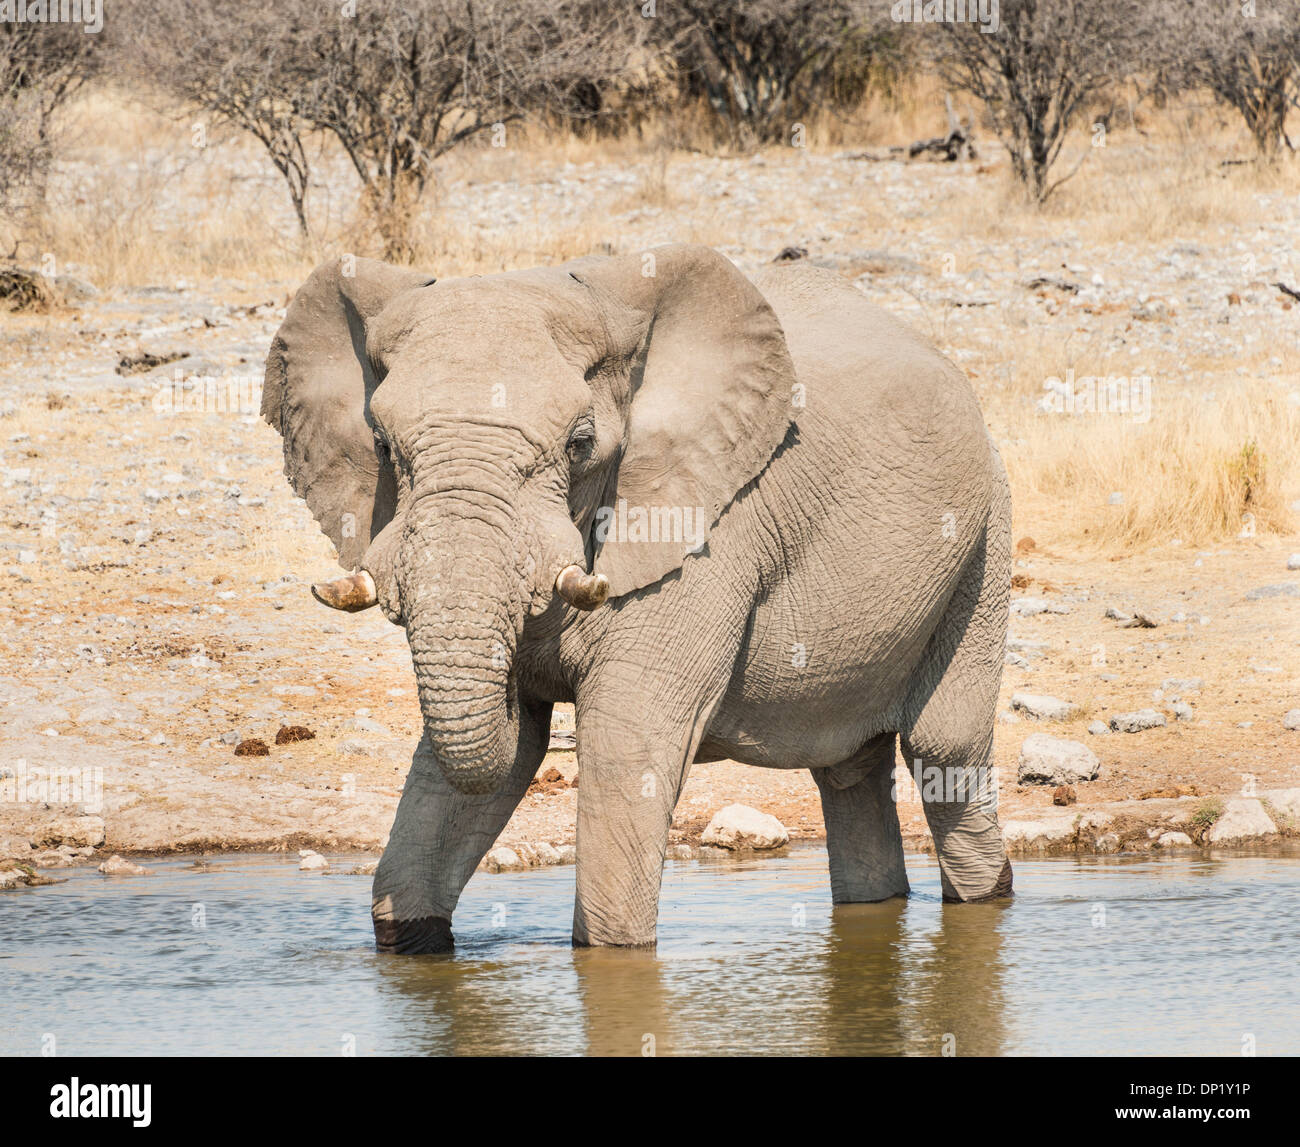 Bush africain Elephant (Loxodonta africana) boire à Koinachas Waterhole, Etosha National Park, Namibie Photo Stock